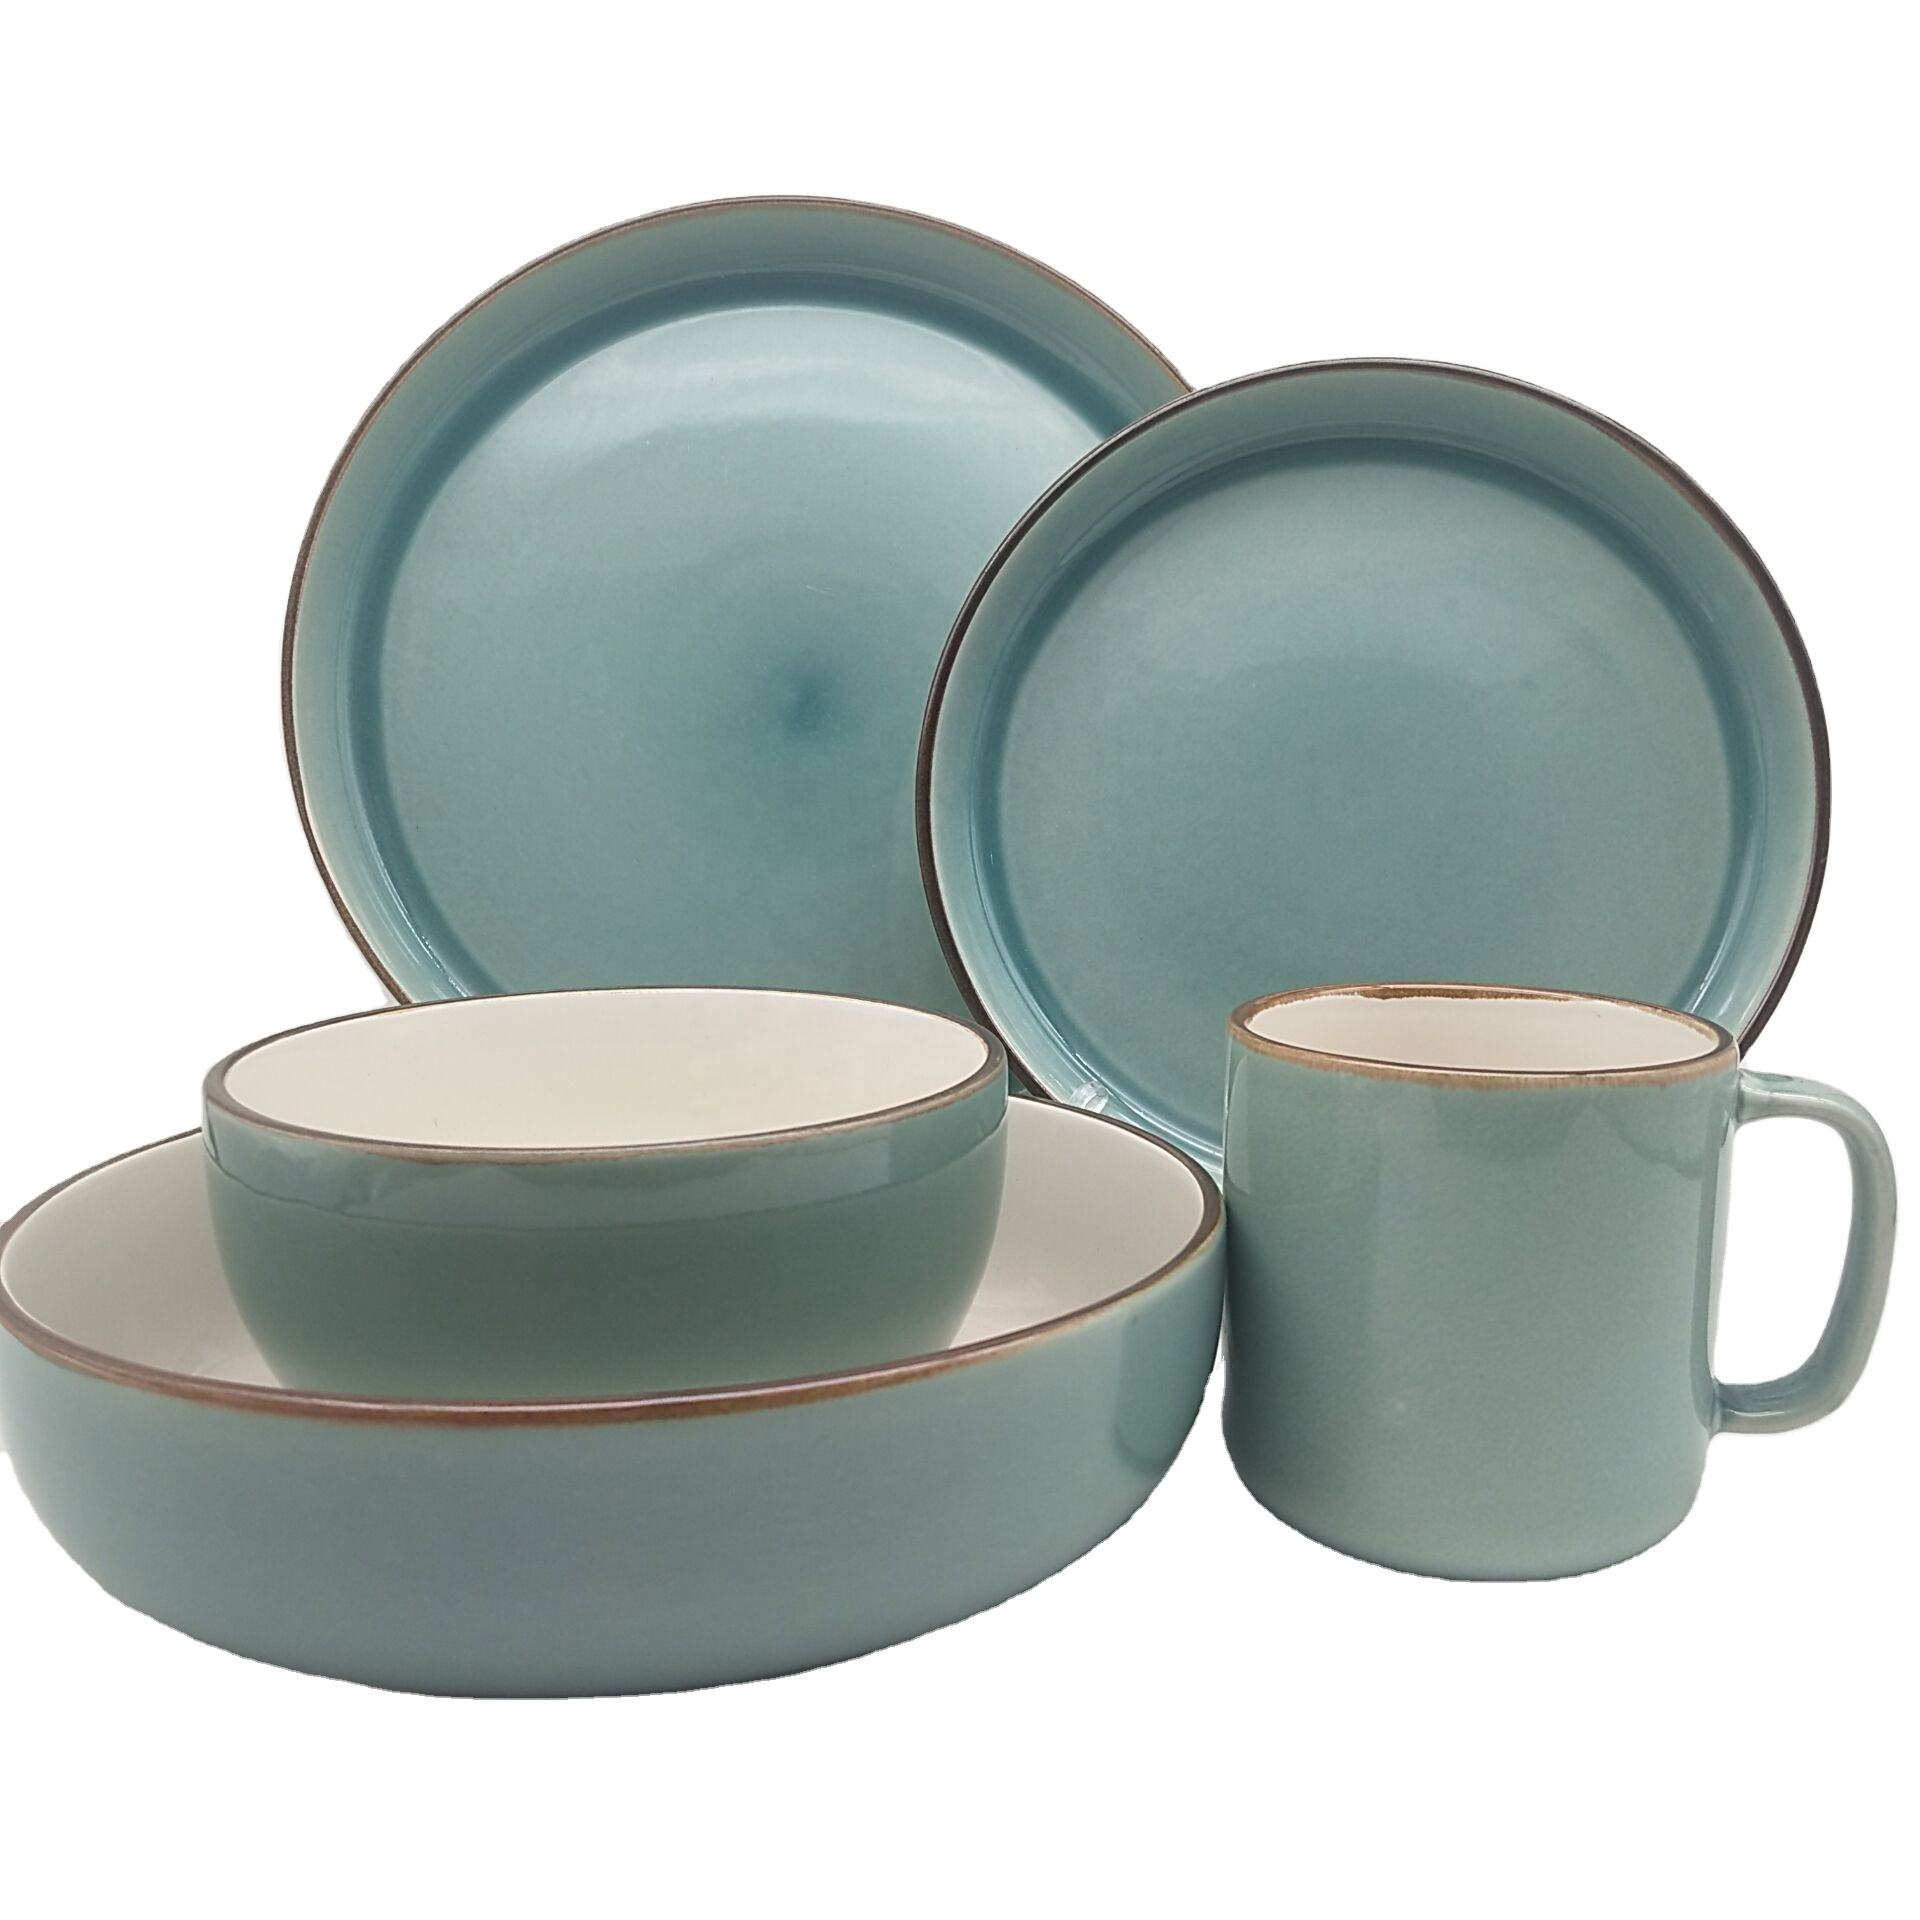 hot sale wholesale cheap green dinnerware ceramic dinnerware sets tableware dinner set